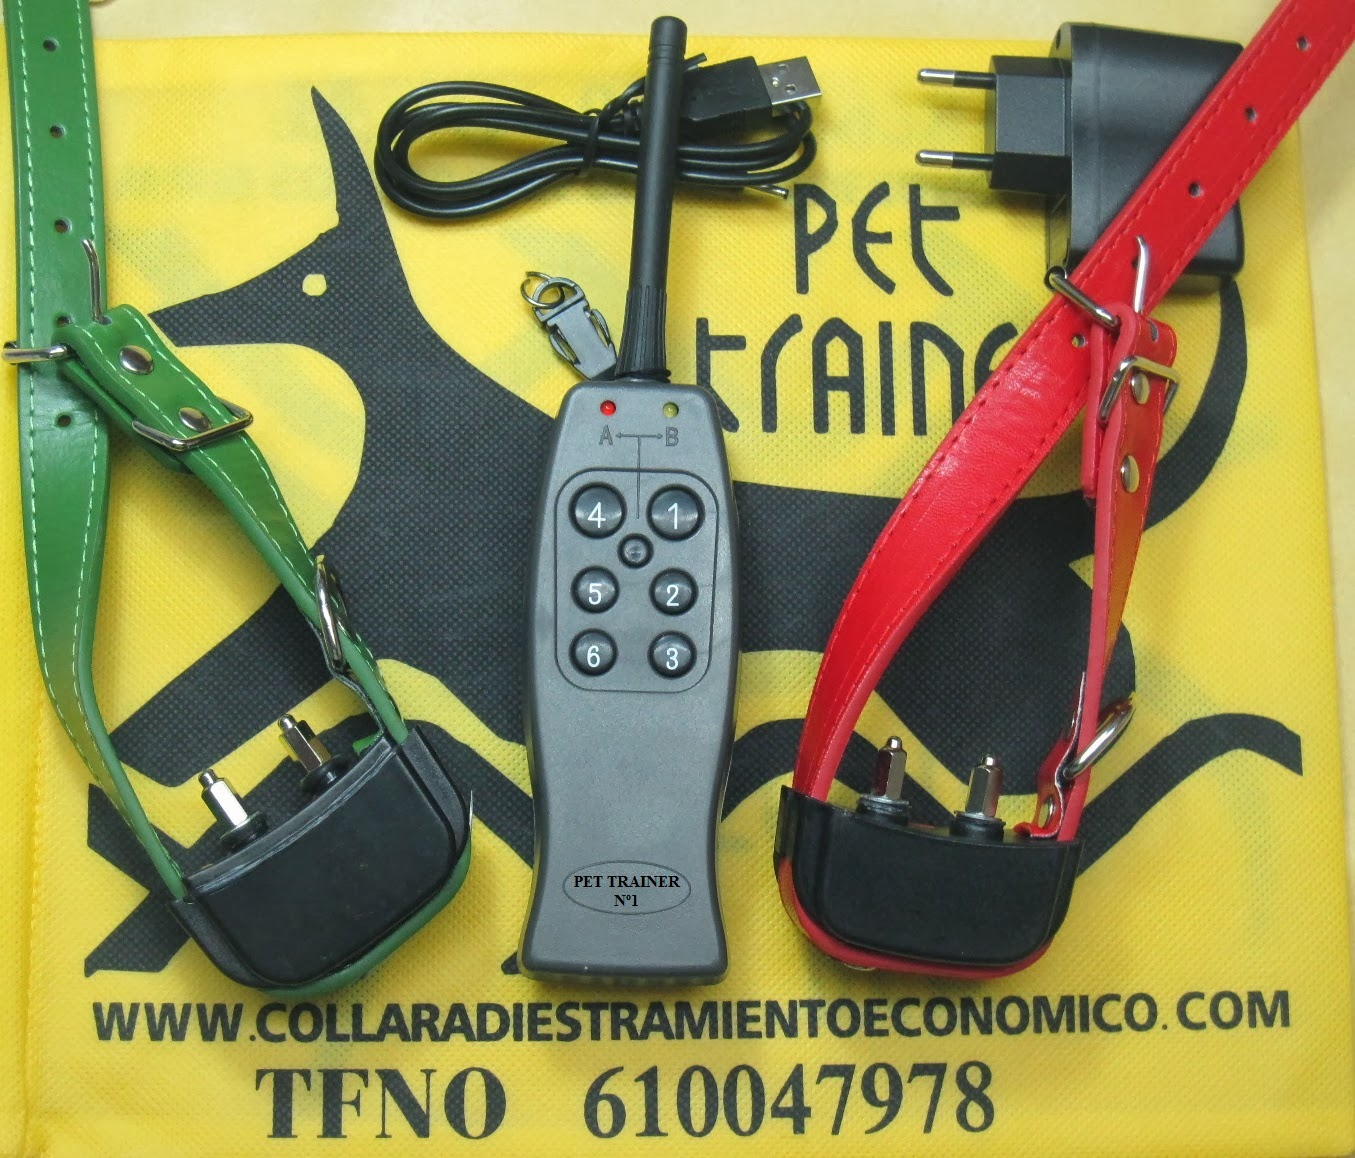 PET TRAINER  Nº1 PLUS RECARG (DOBLE) 70€